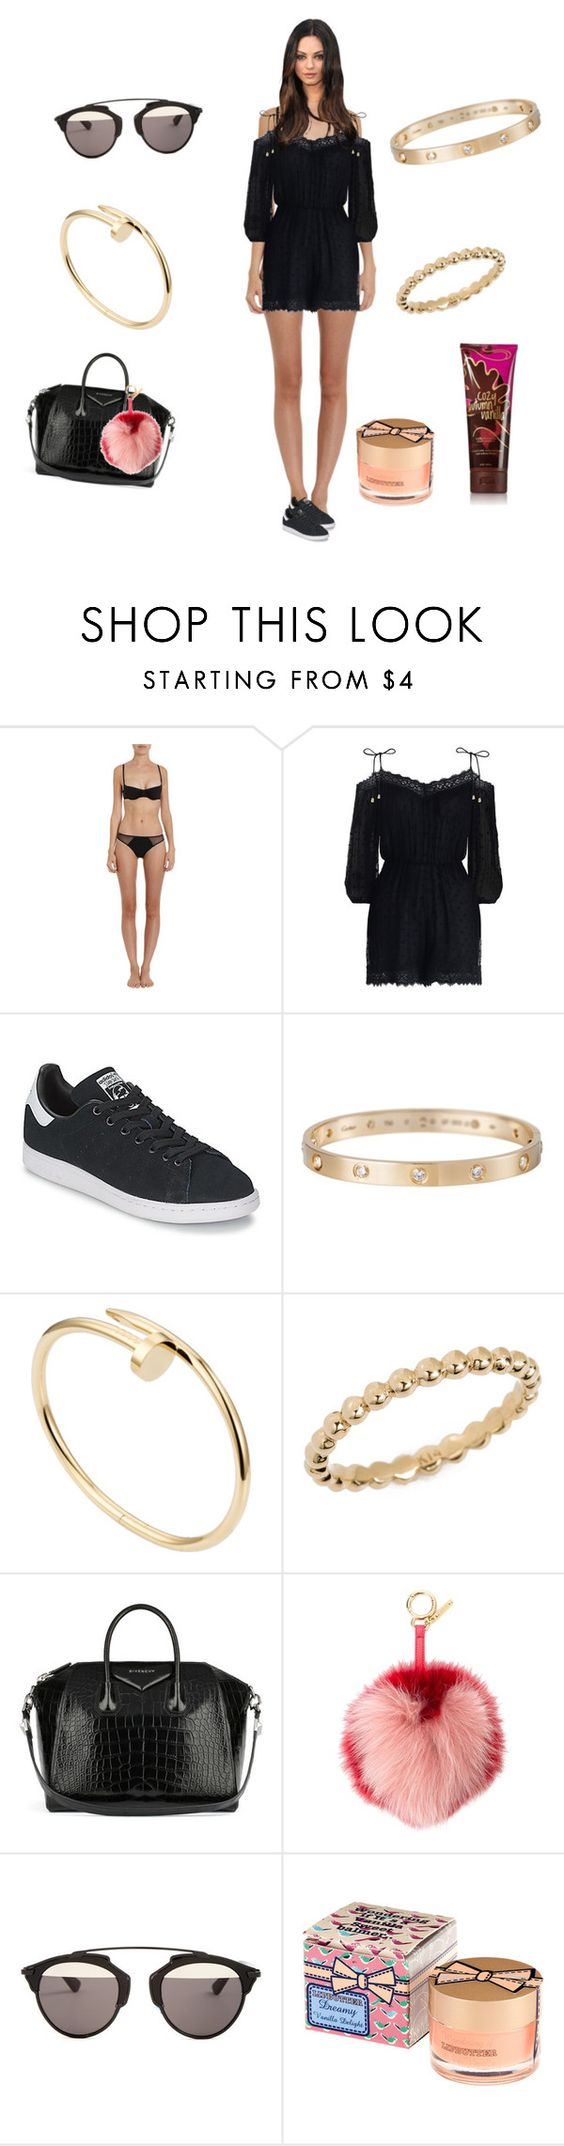 """Untitled #1784"" by rine23 ❤ liked on Polyvore featuring Cosabella, Zimmermann, adidas, Cartier, Anine Bing, Givenchy, Fendi, Christian Dior and H&M"